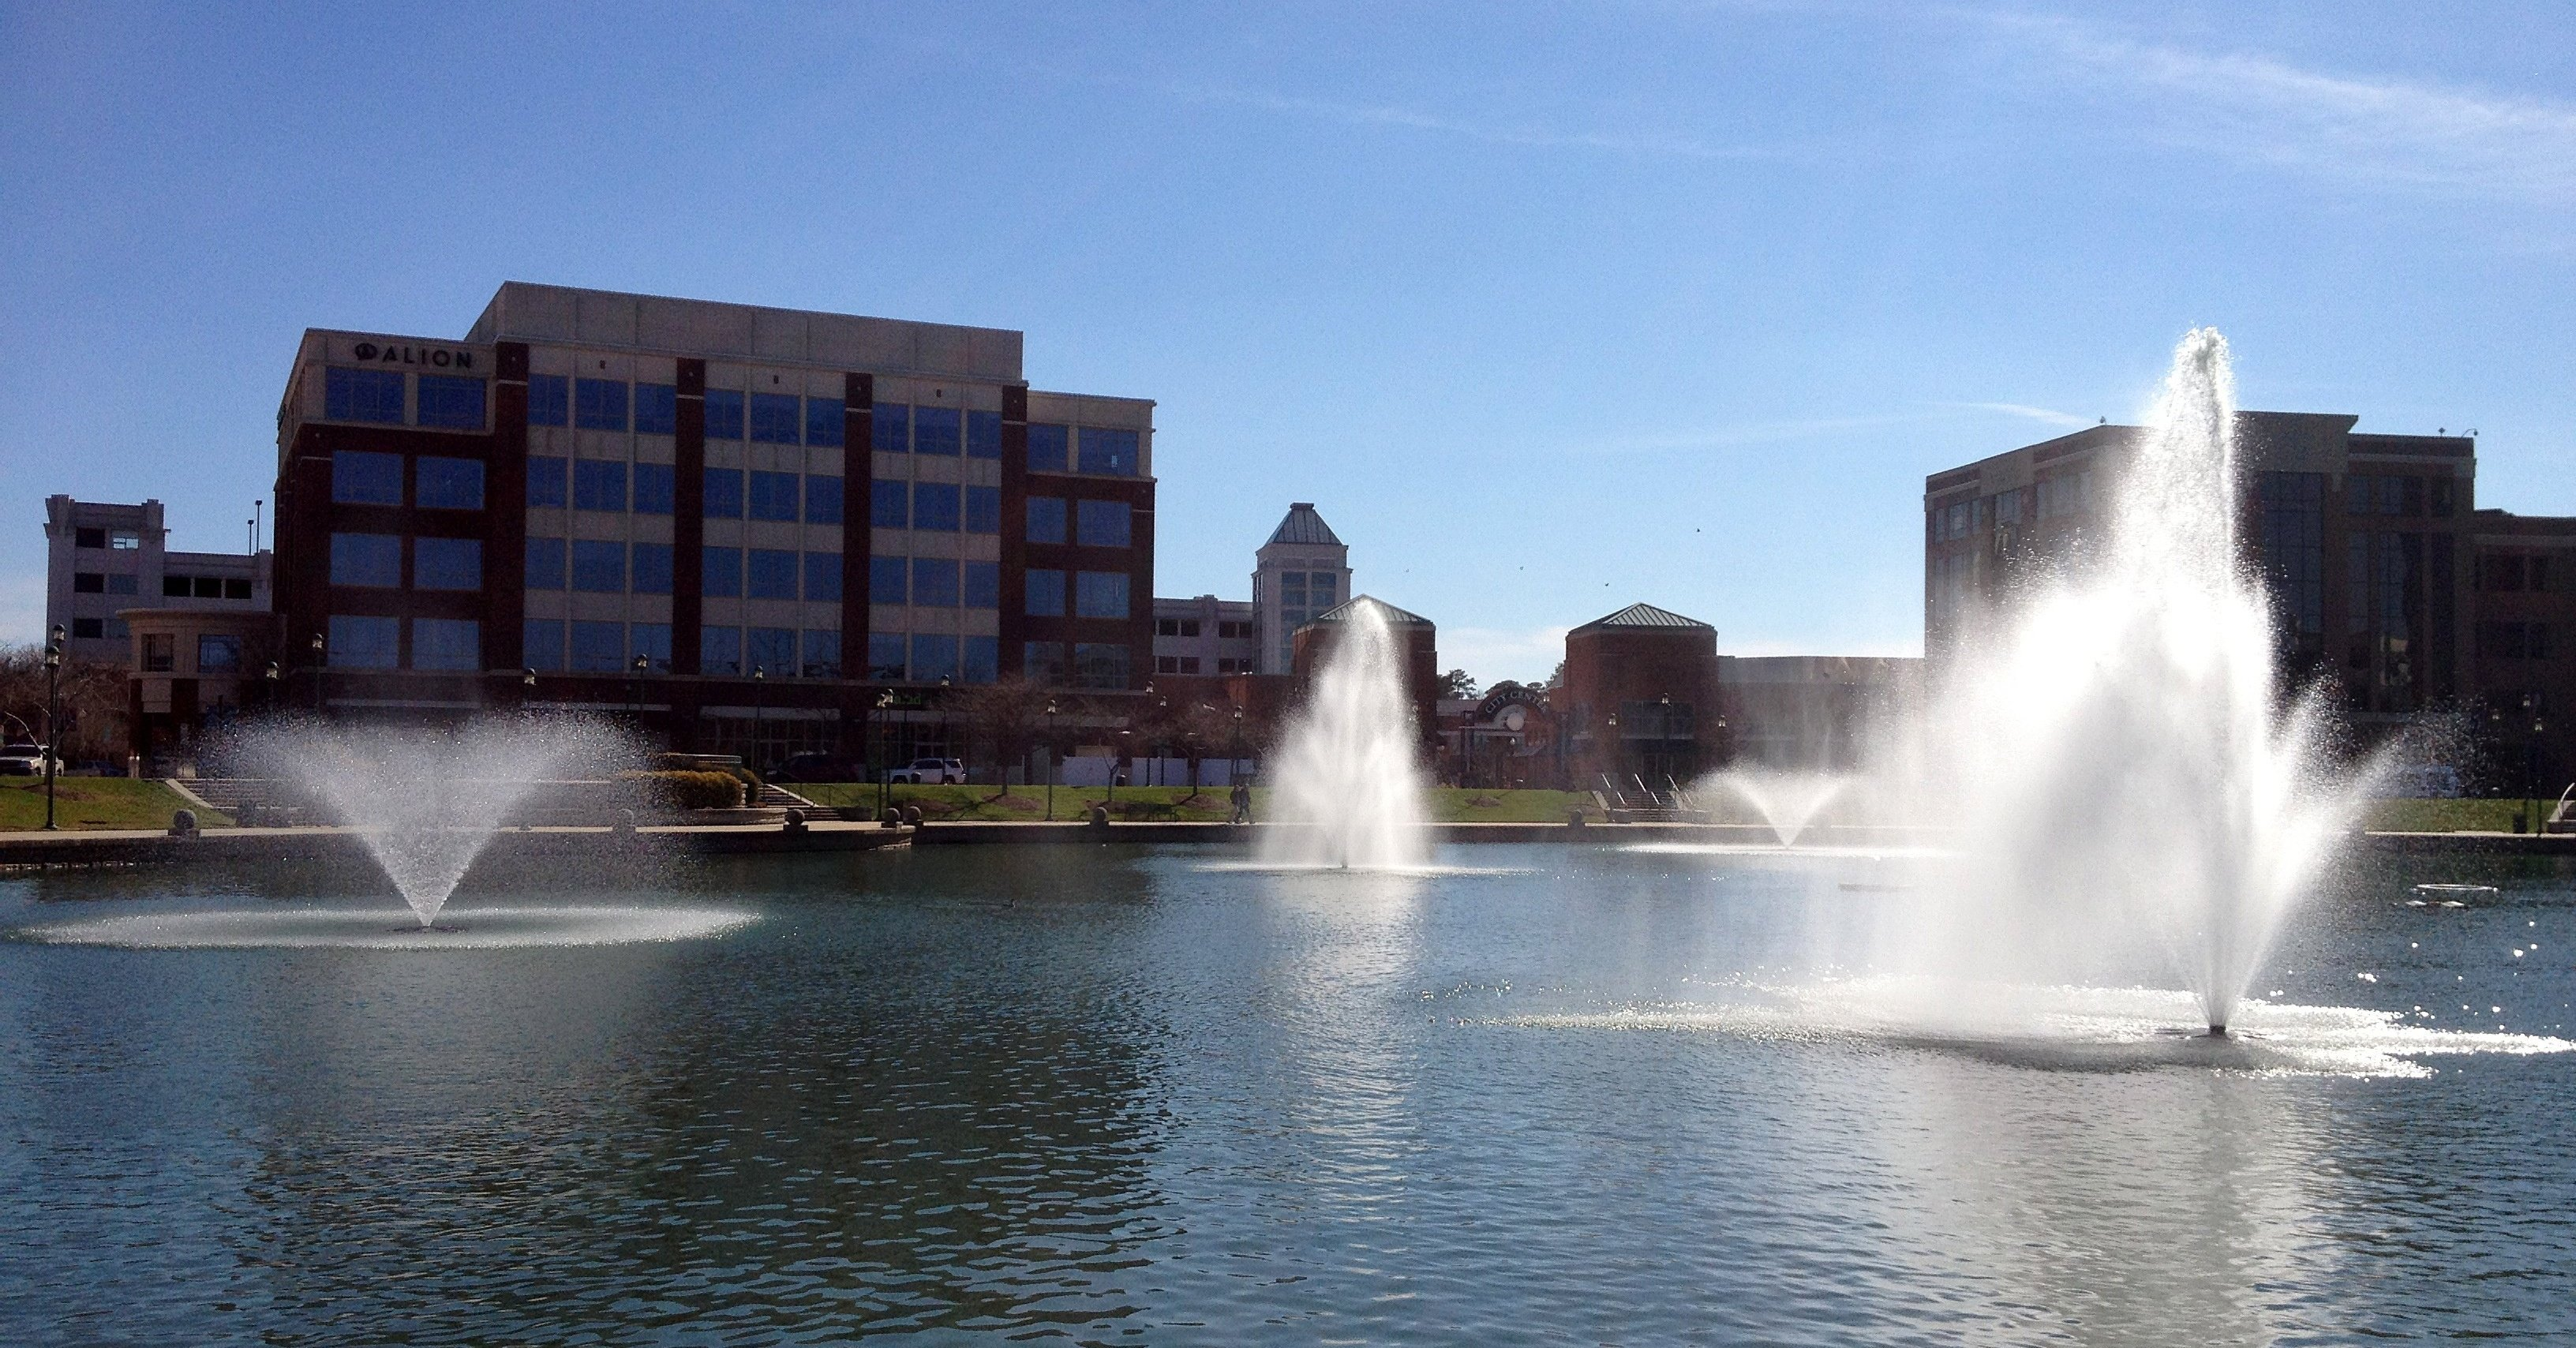 City Center_Fountains_Newport News VA_07.13-491245-edited